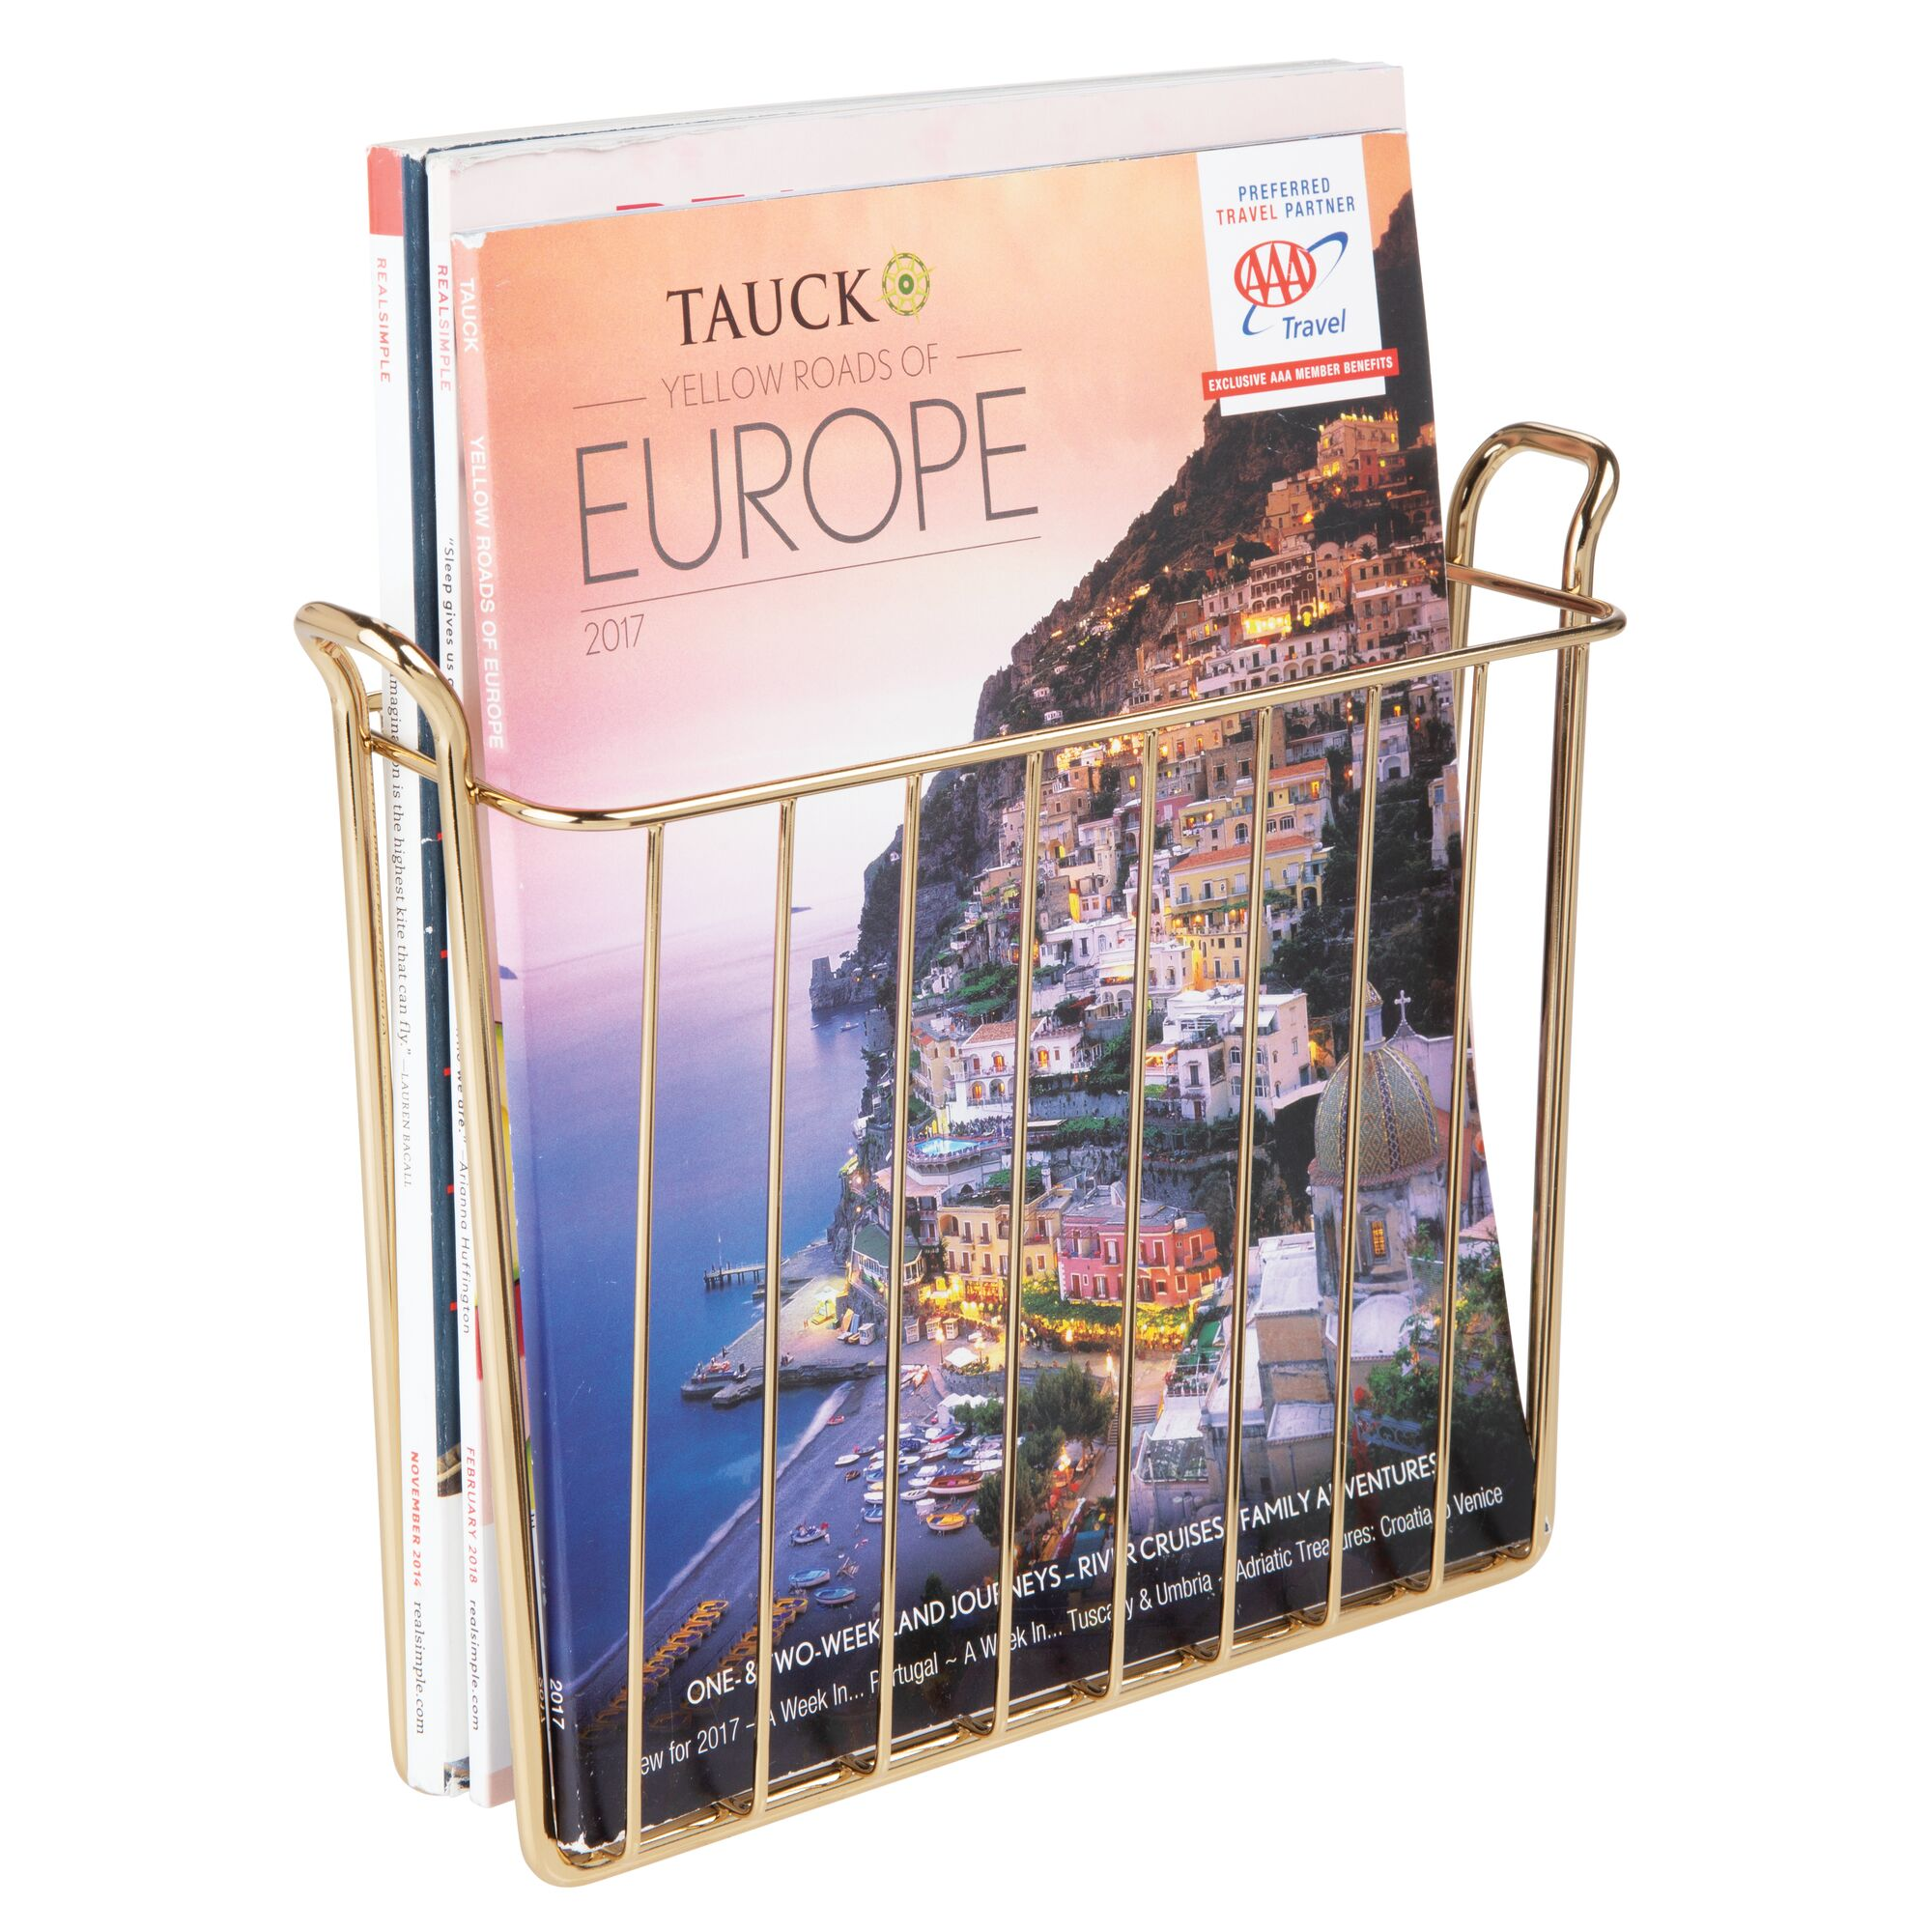 mDesign-Metal-Wall-Mount-Magazine-Book-Holder-Compact-Rack thumbnail 61